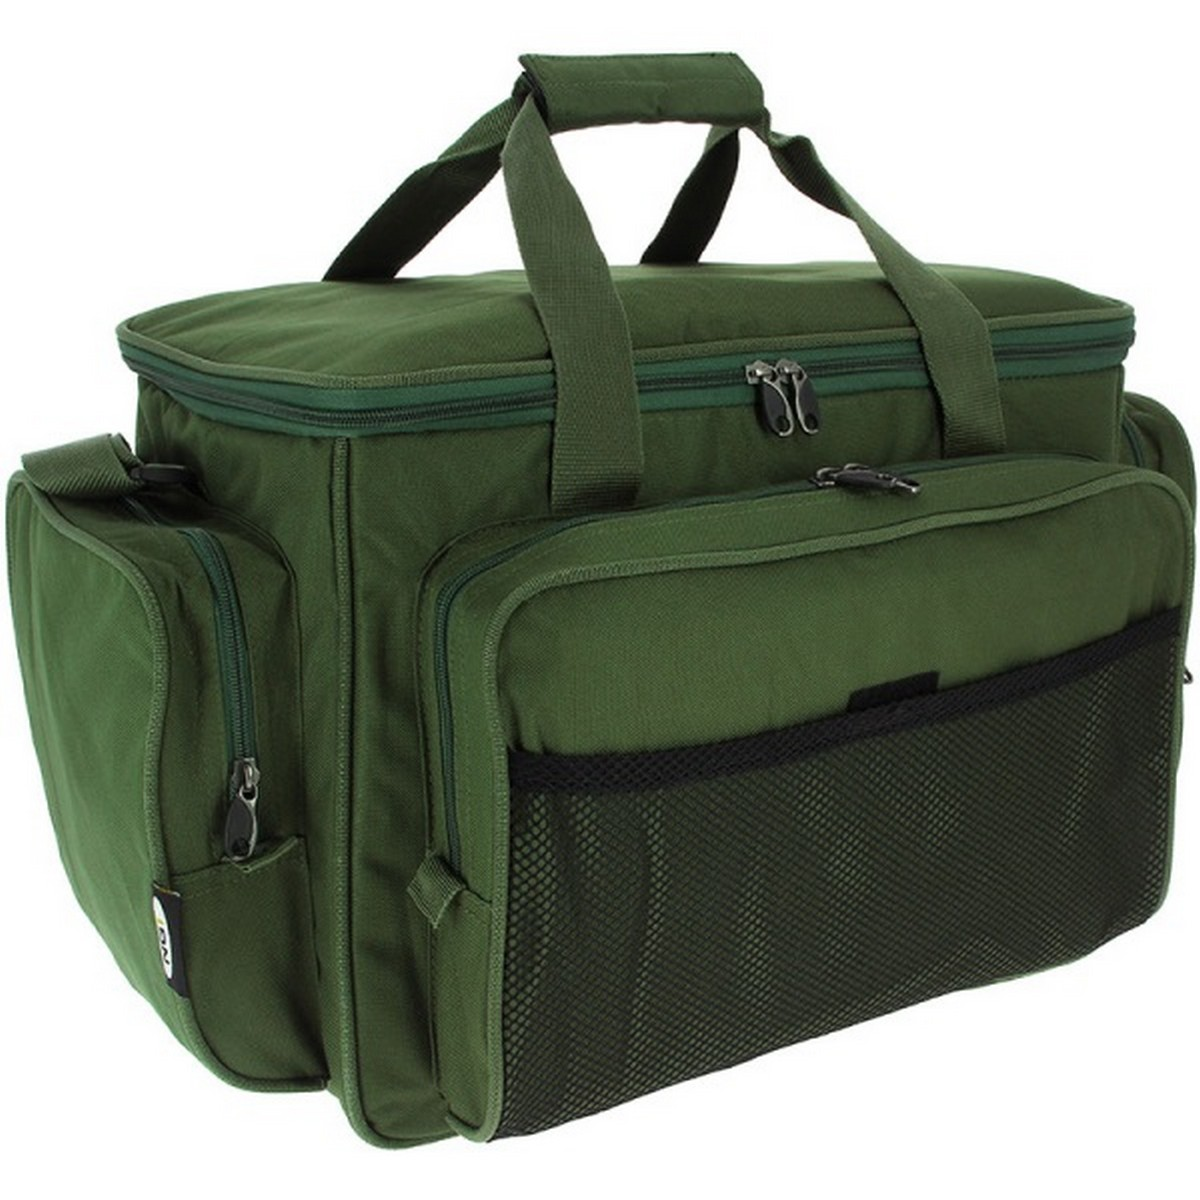 Сак Green Insulated Carryall (709)